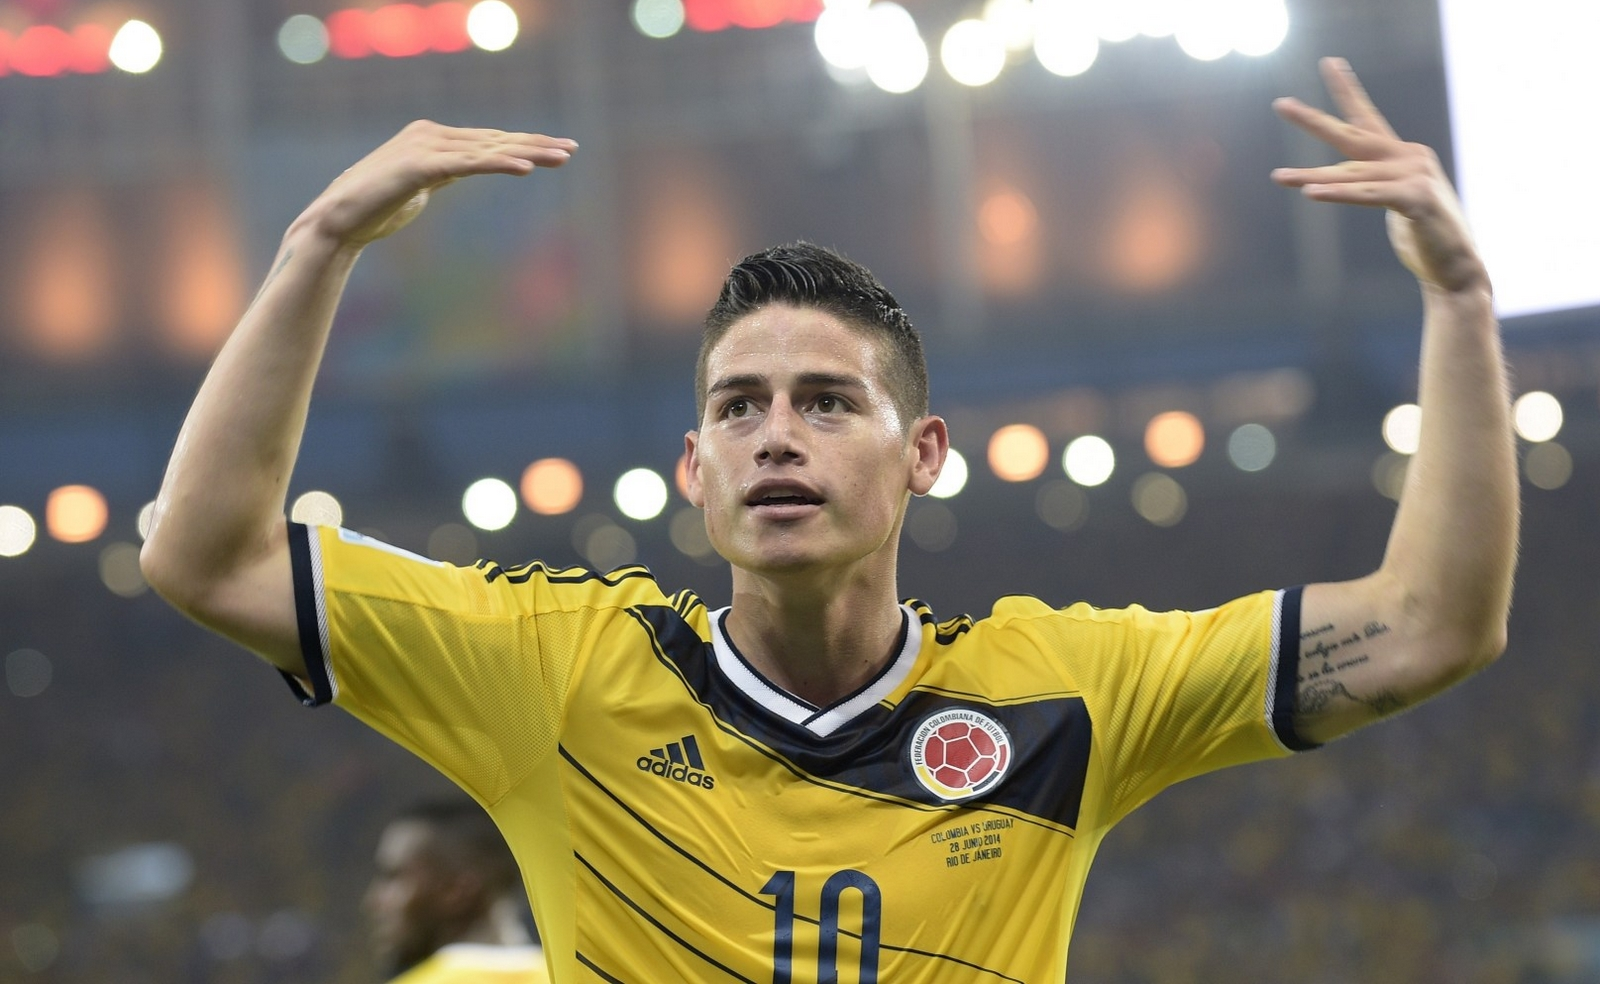 World Cup Stunner James Rodriguez Hd Wallpapers